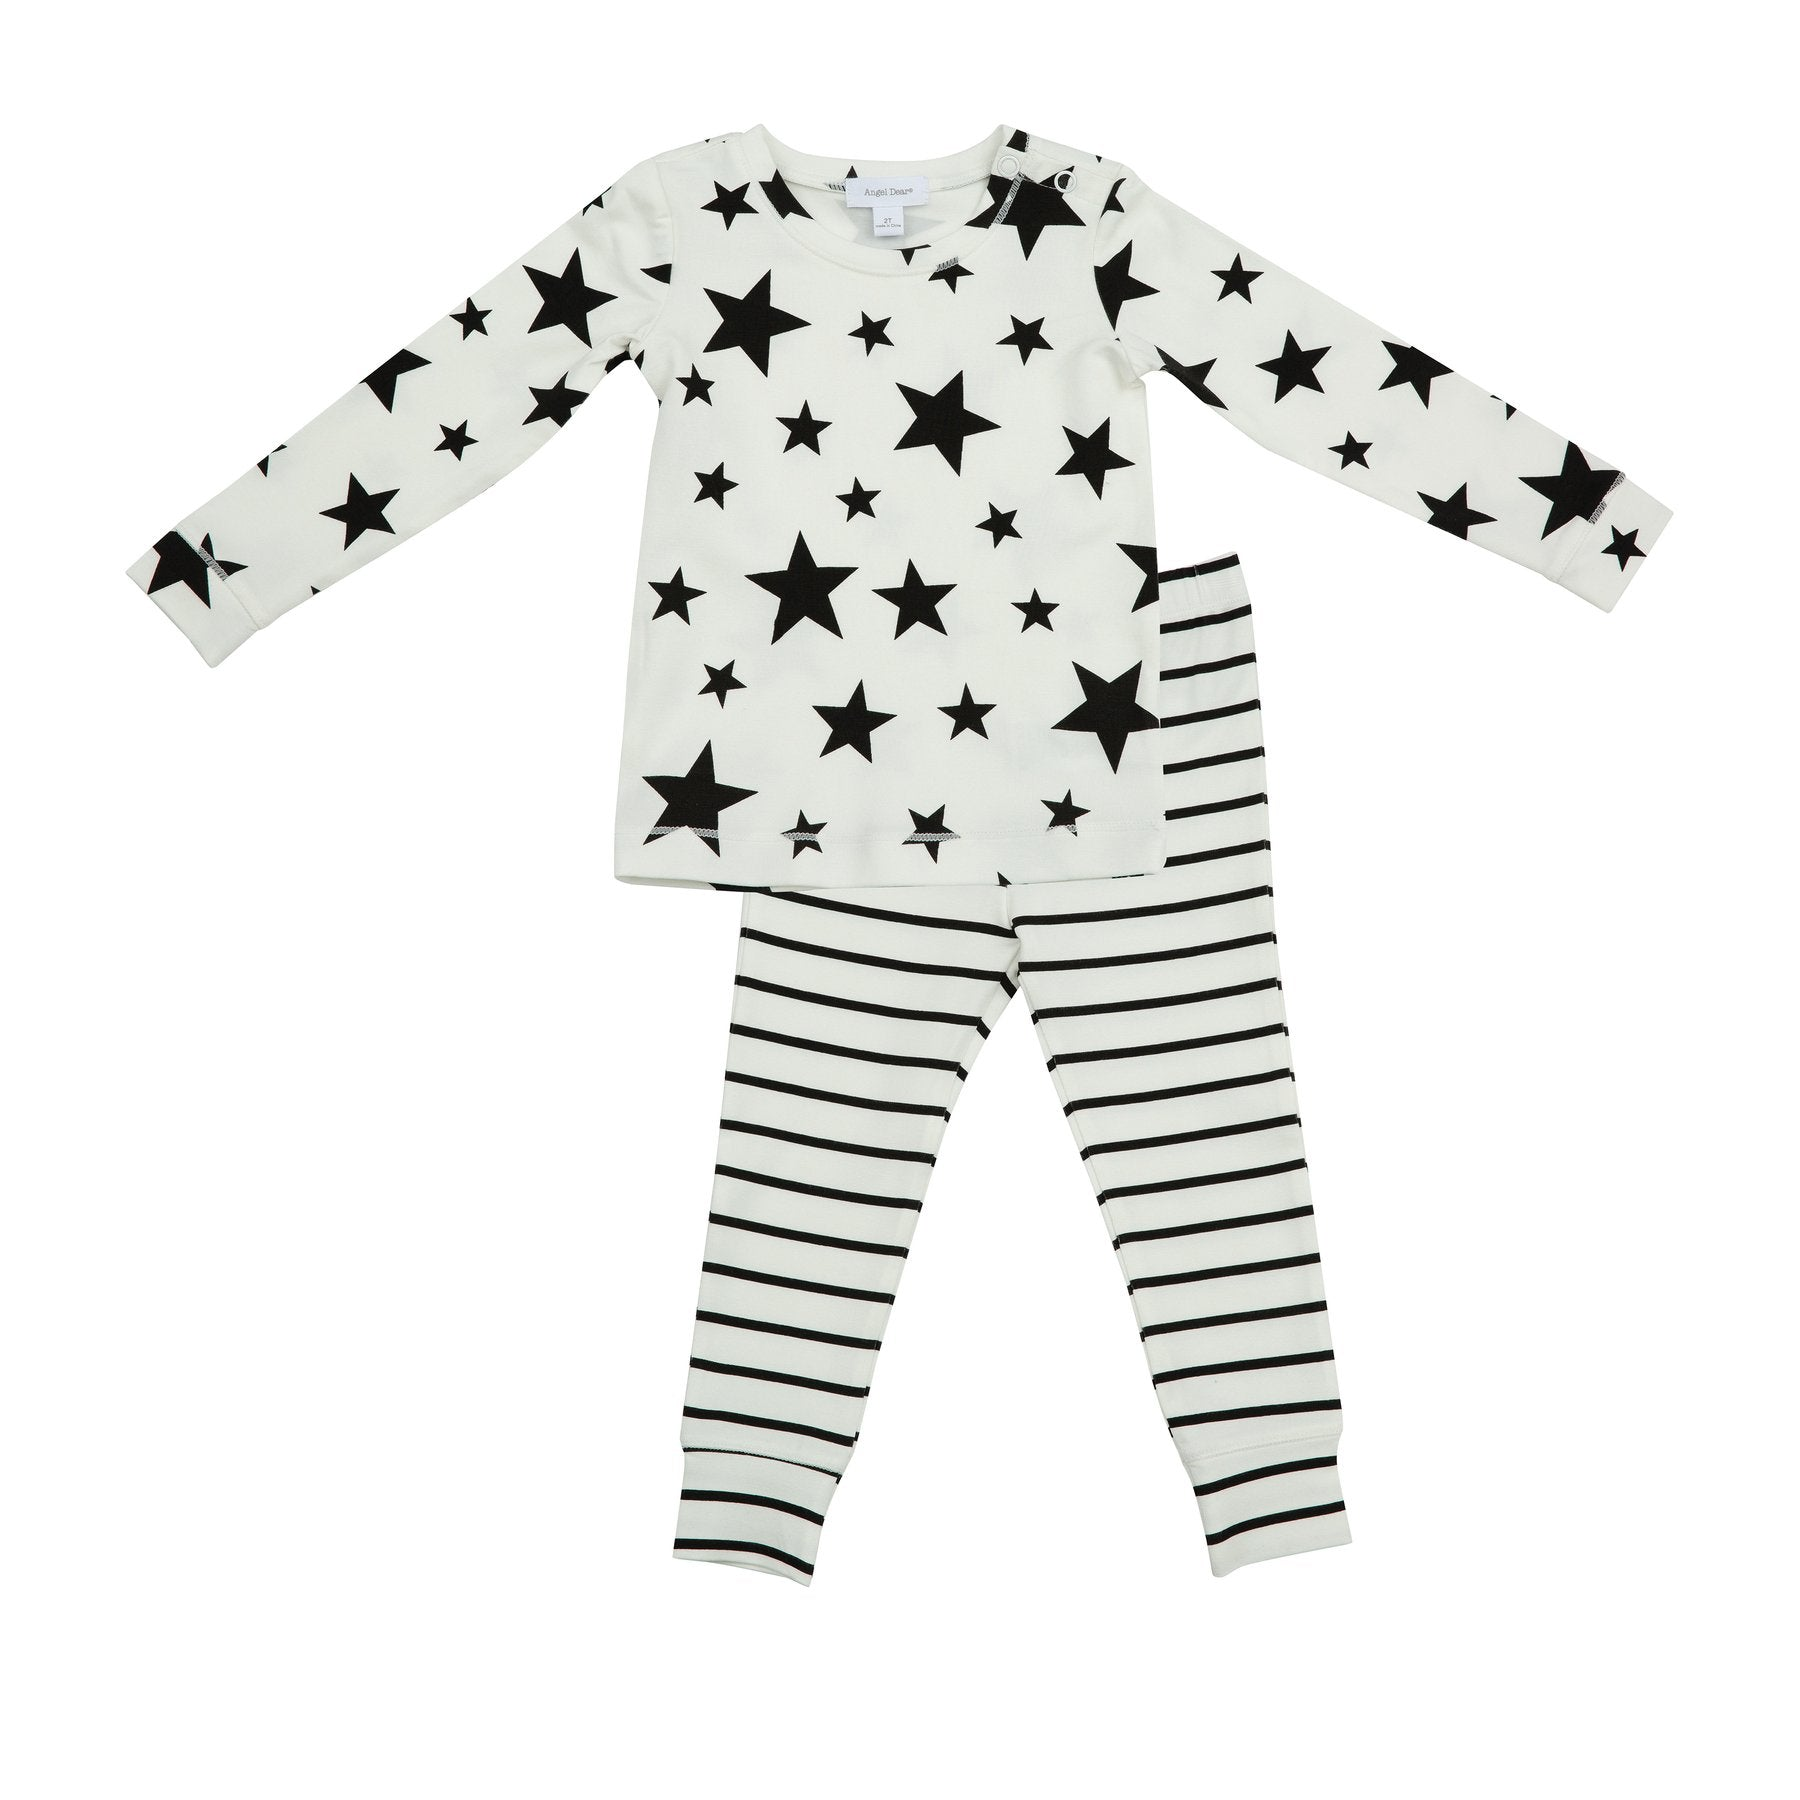 Star and Stripes Lounge Wear